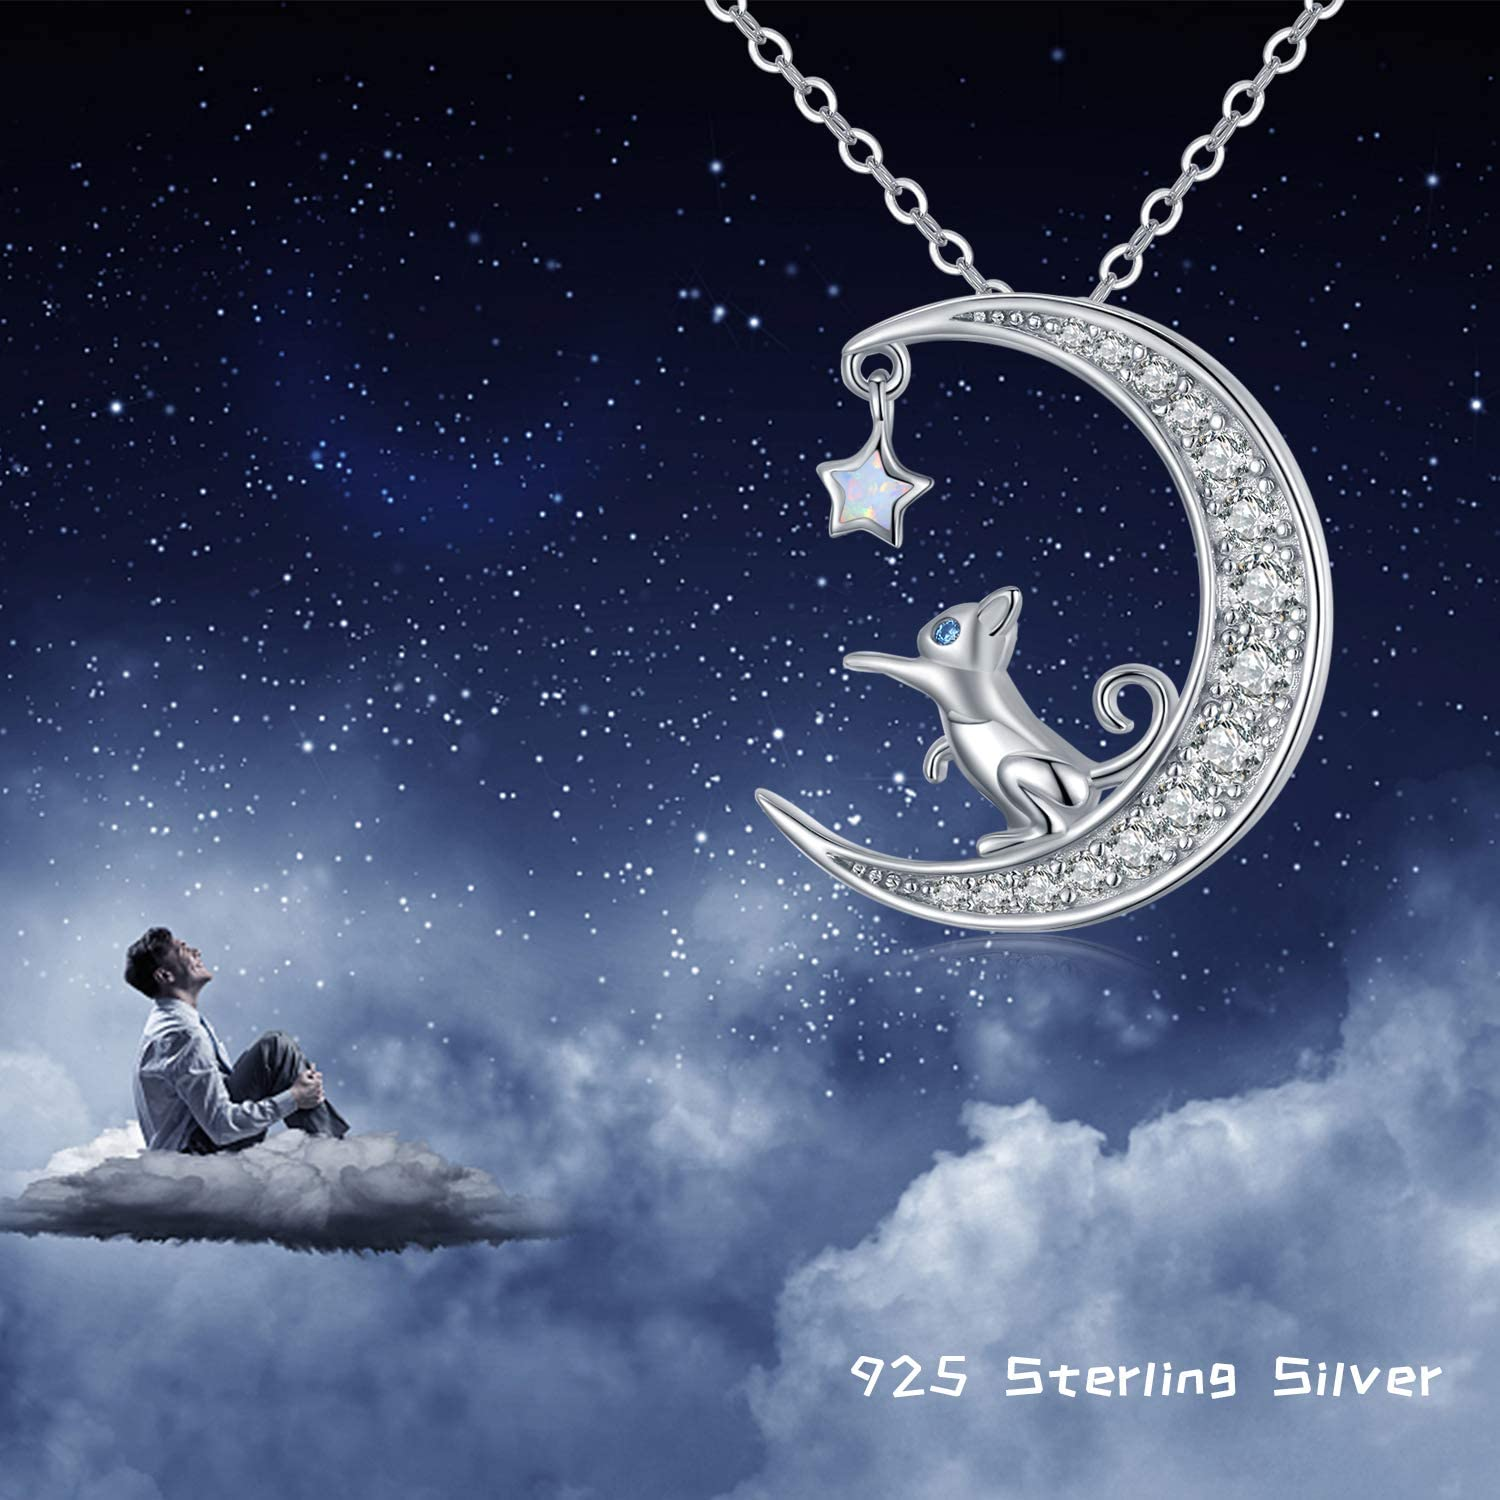 Moon Pendant Necklace with Opal Star Light Dainty Infinite Love Y-Necklace,Moon Cat Necklace TRISHULA 925 Sterling Silver Forever Love Sparkling Crescent Jewelry Gift for Women Girls,Teen